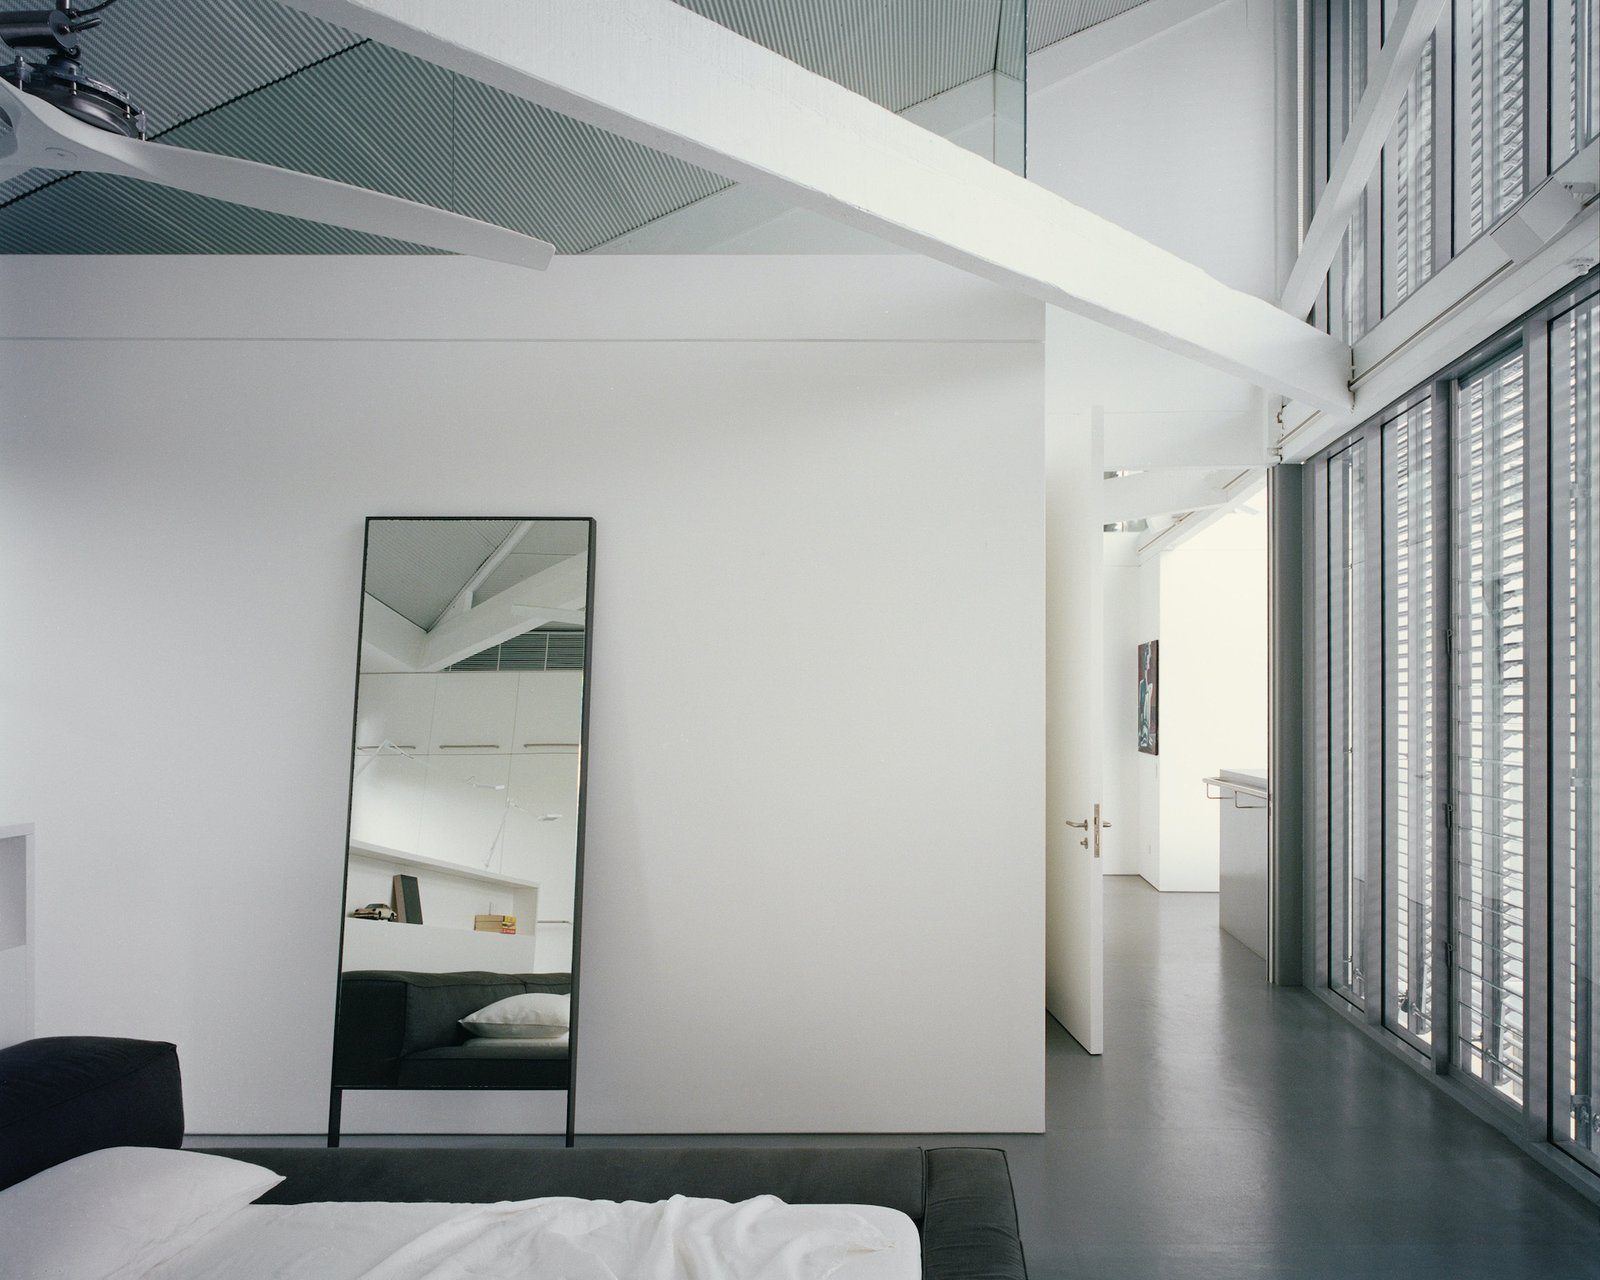 Bedroom of Redfern Warehouse by Ian Moore Architects.